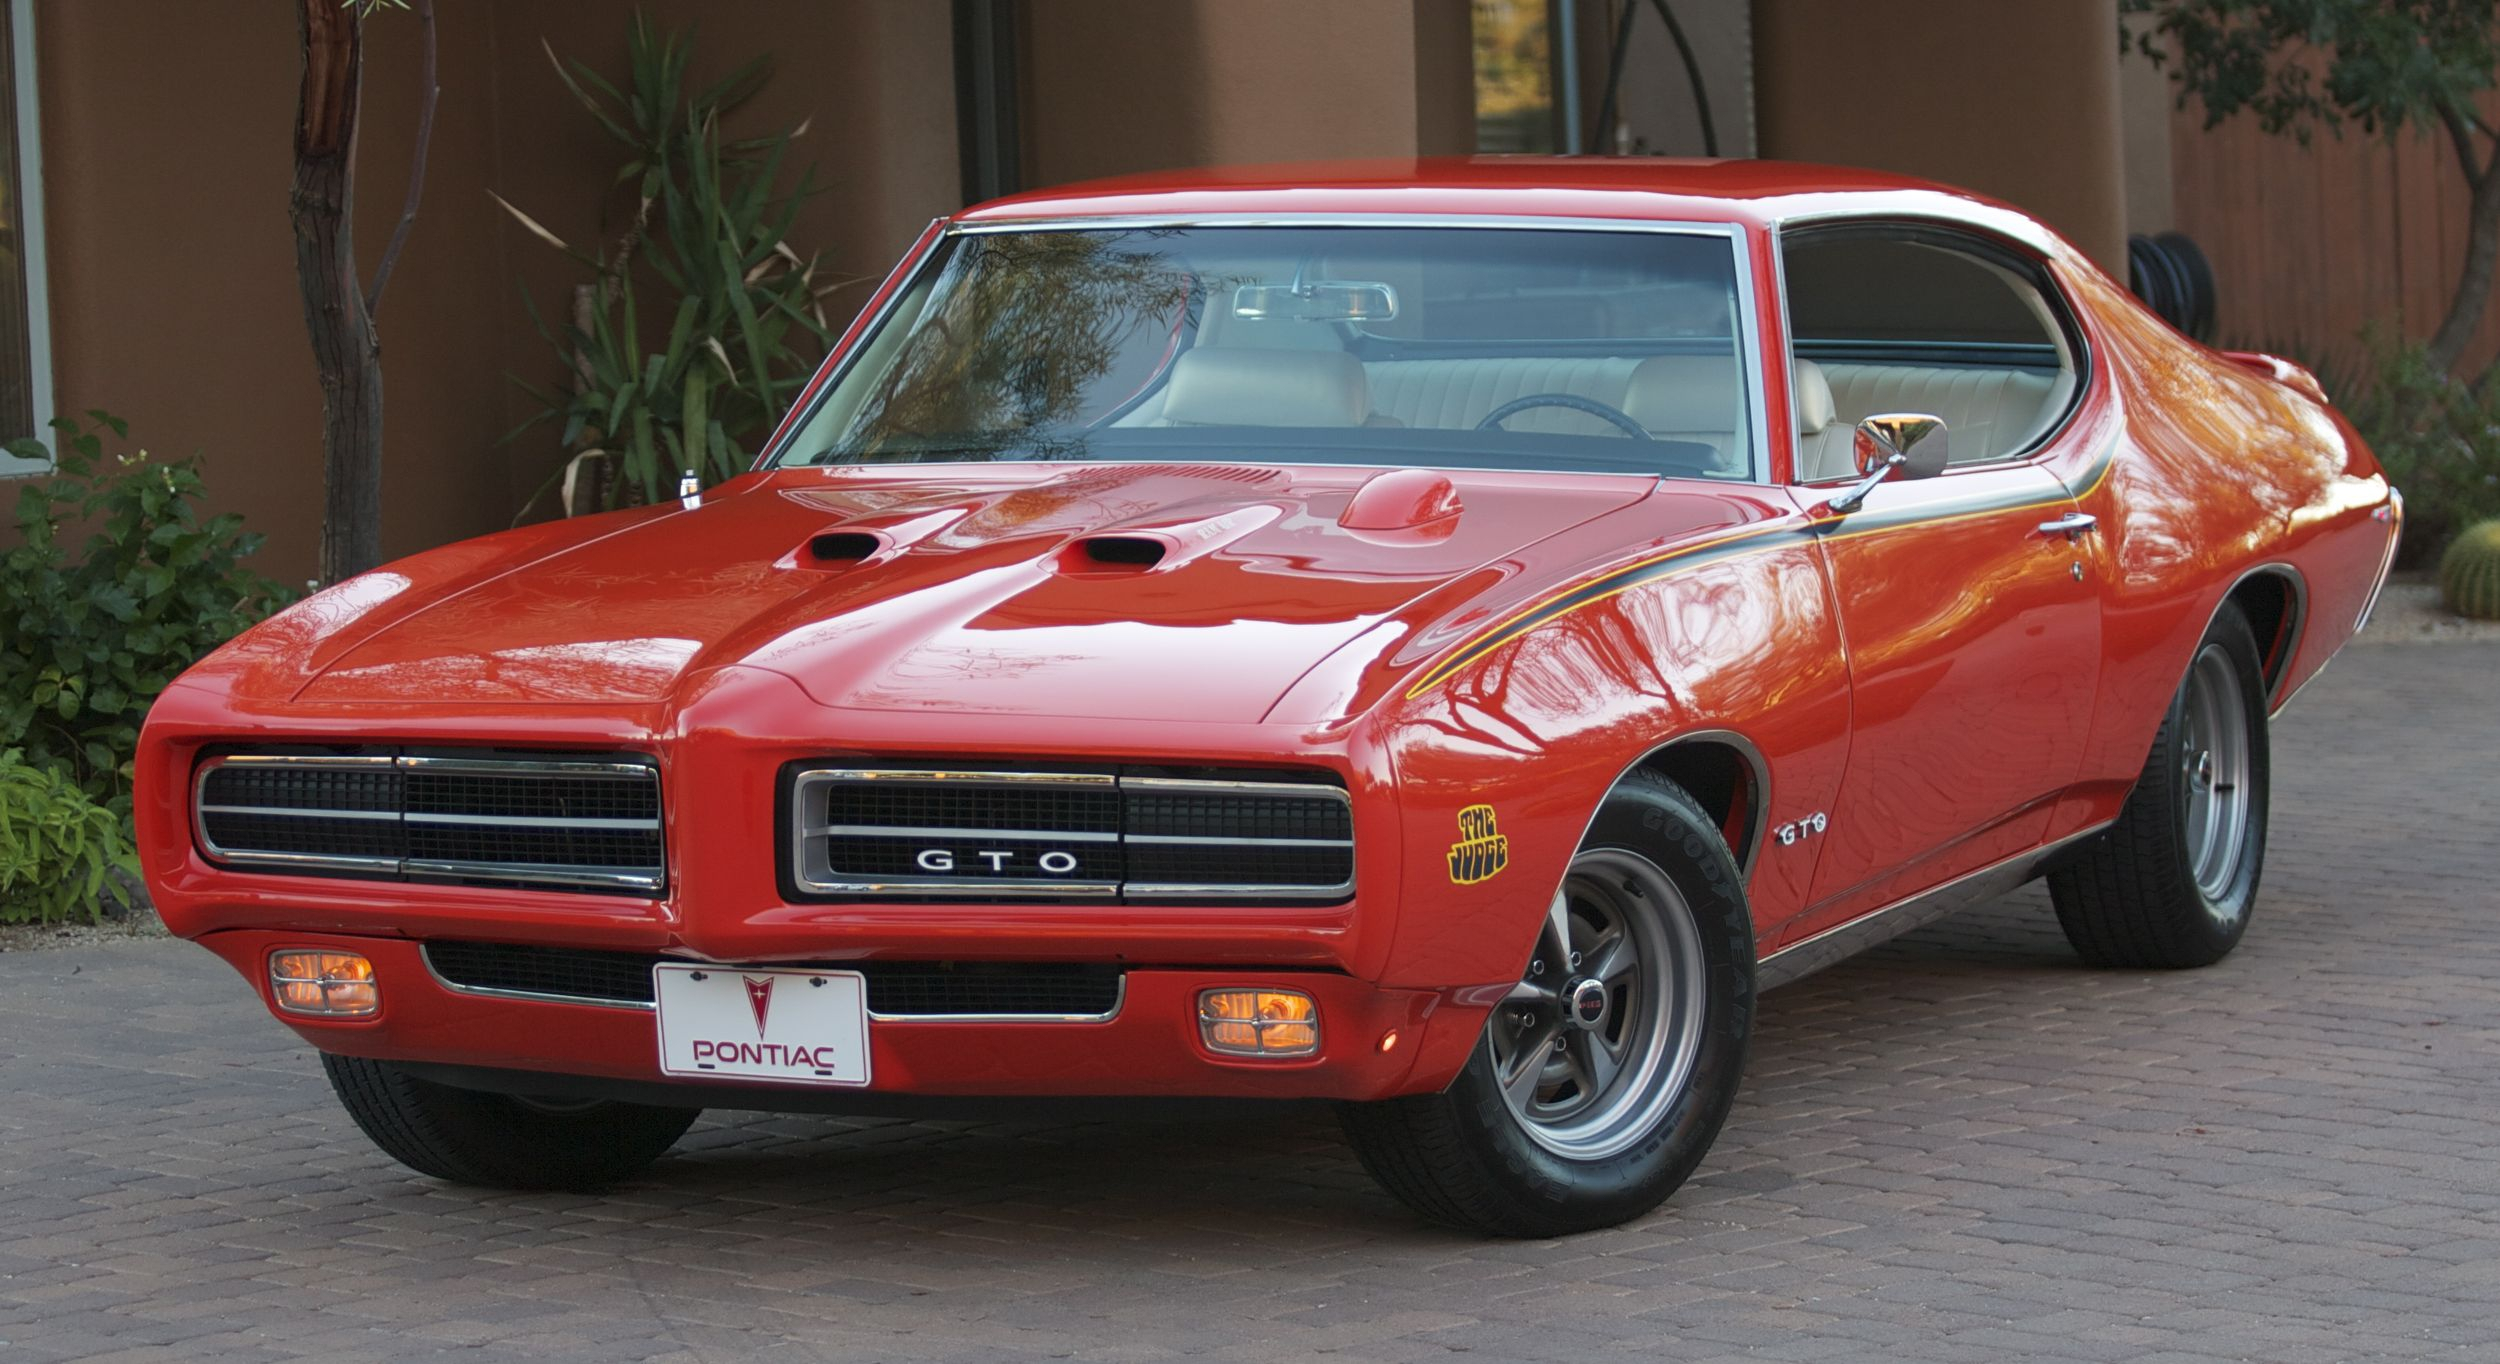 Pontiac Gto Hd Wallpaper